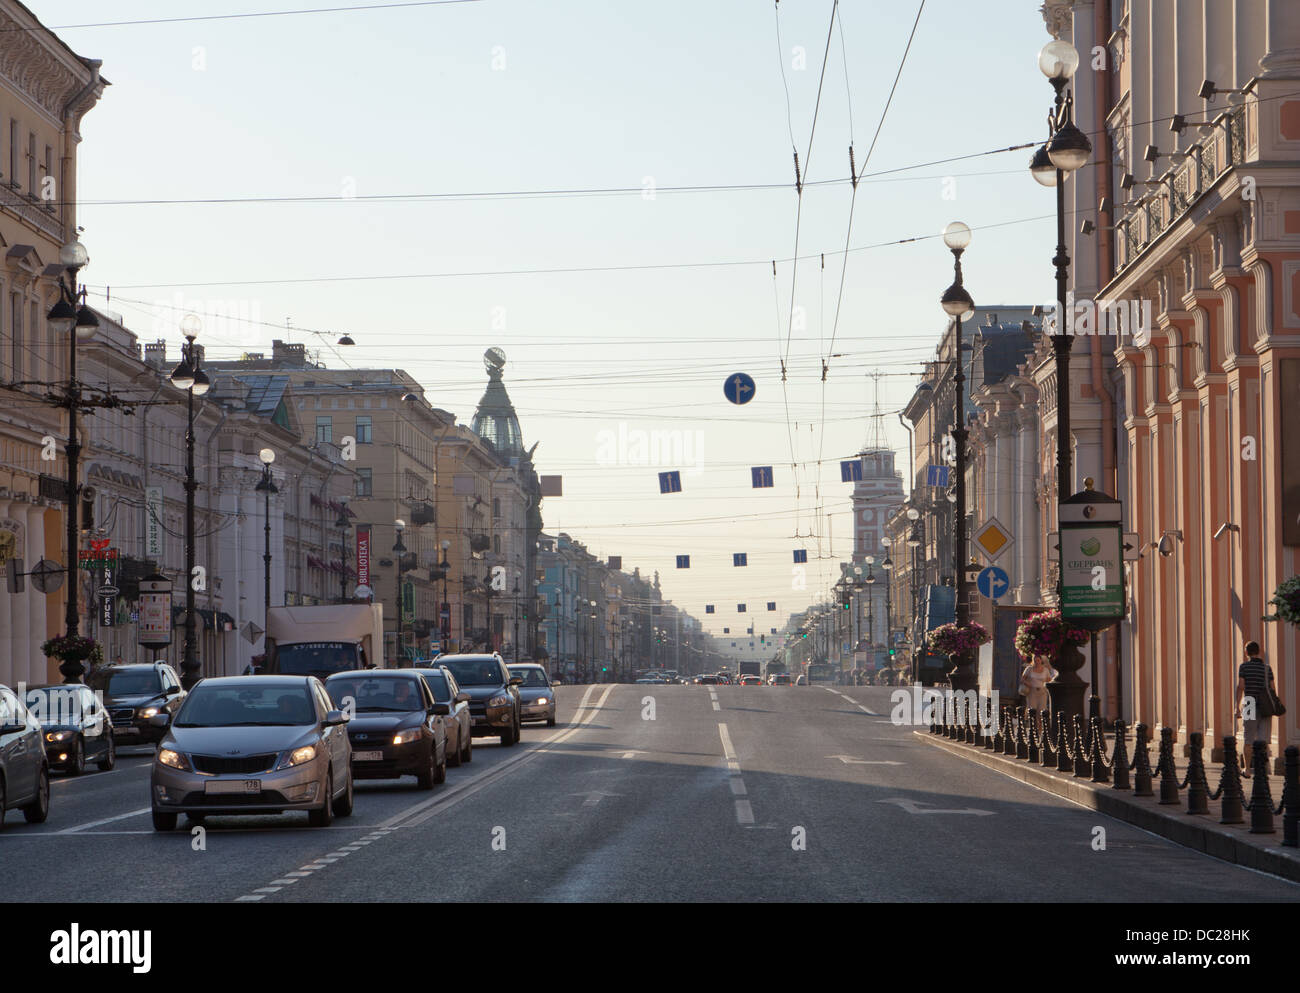 Nevsky Prospect, St. Petersburg, Russia. Stock Photo